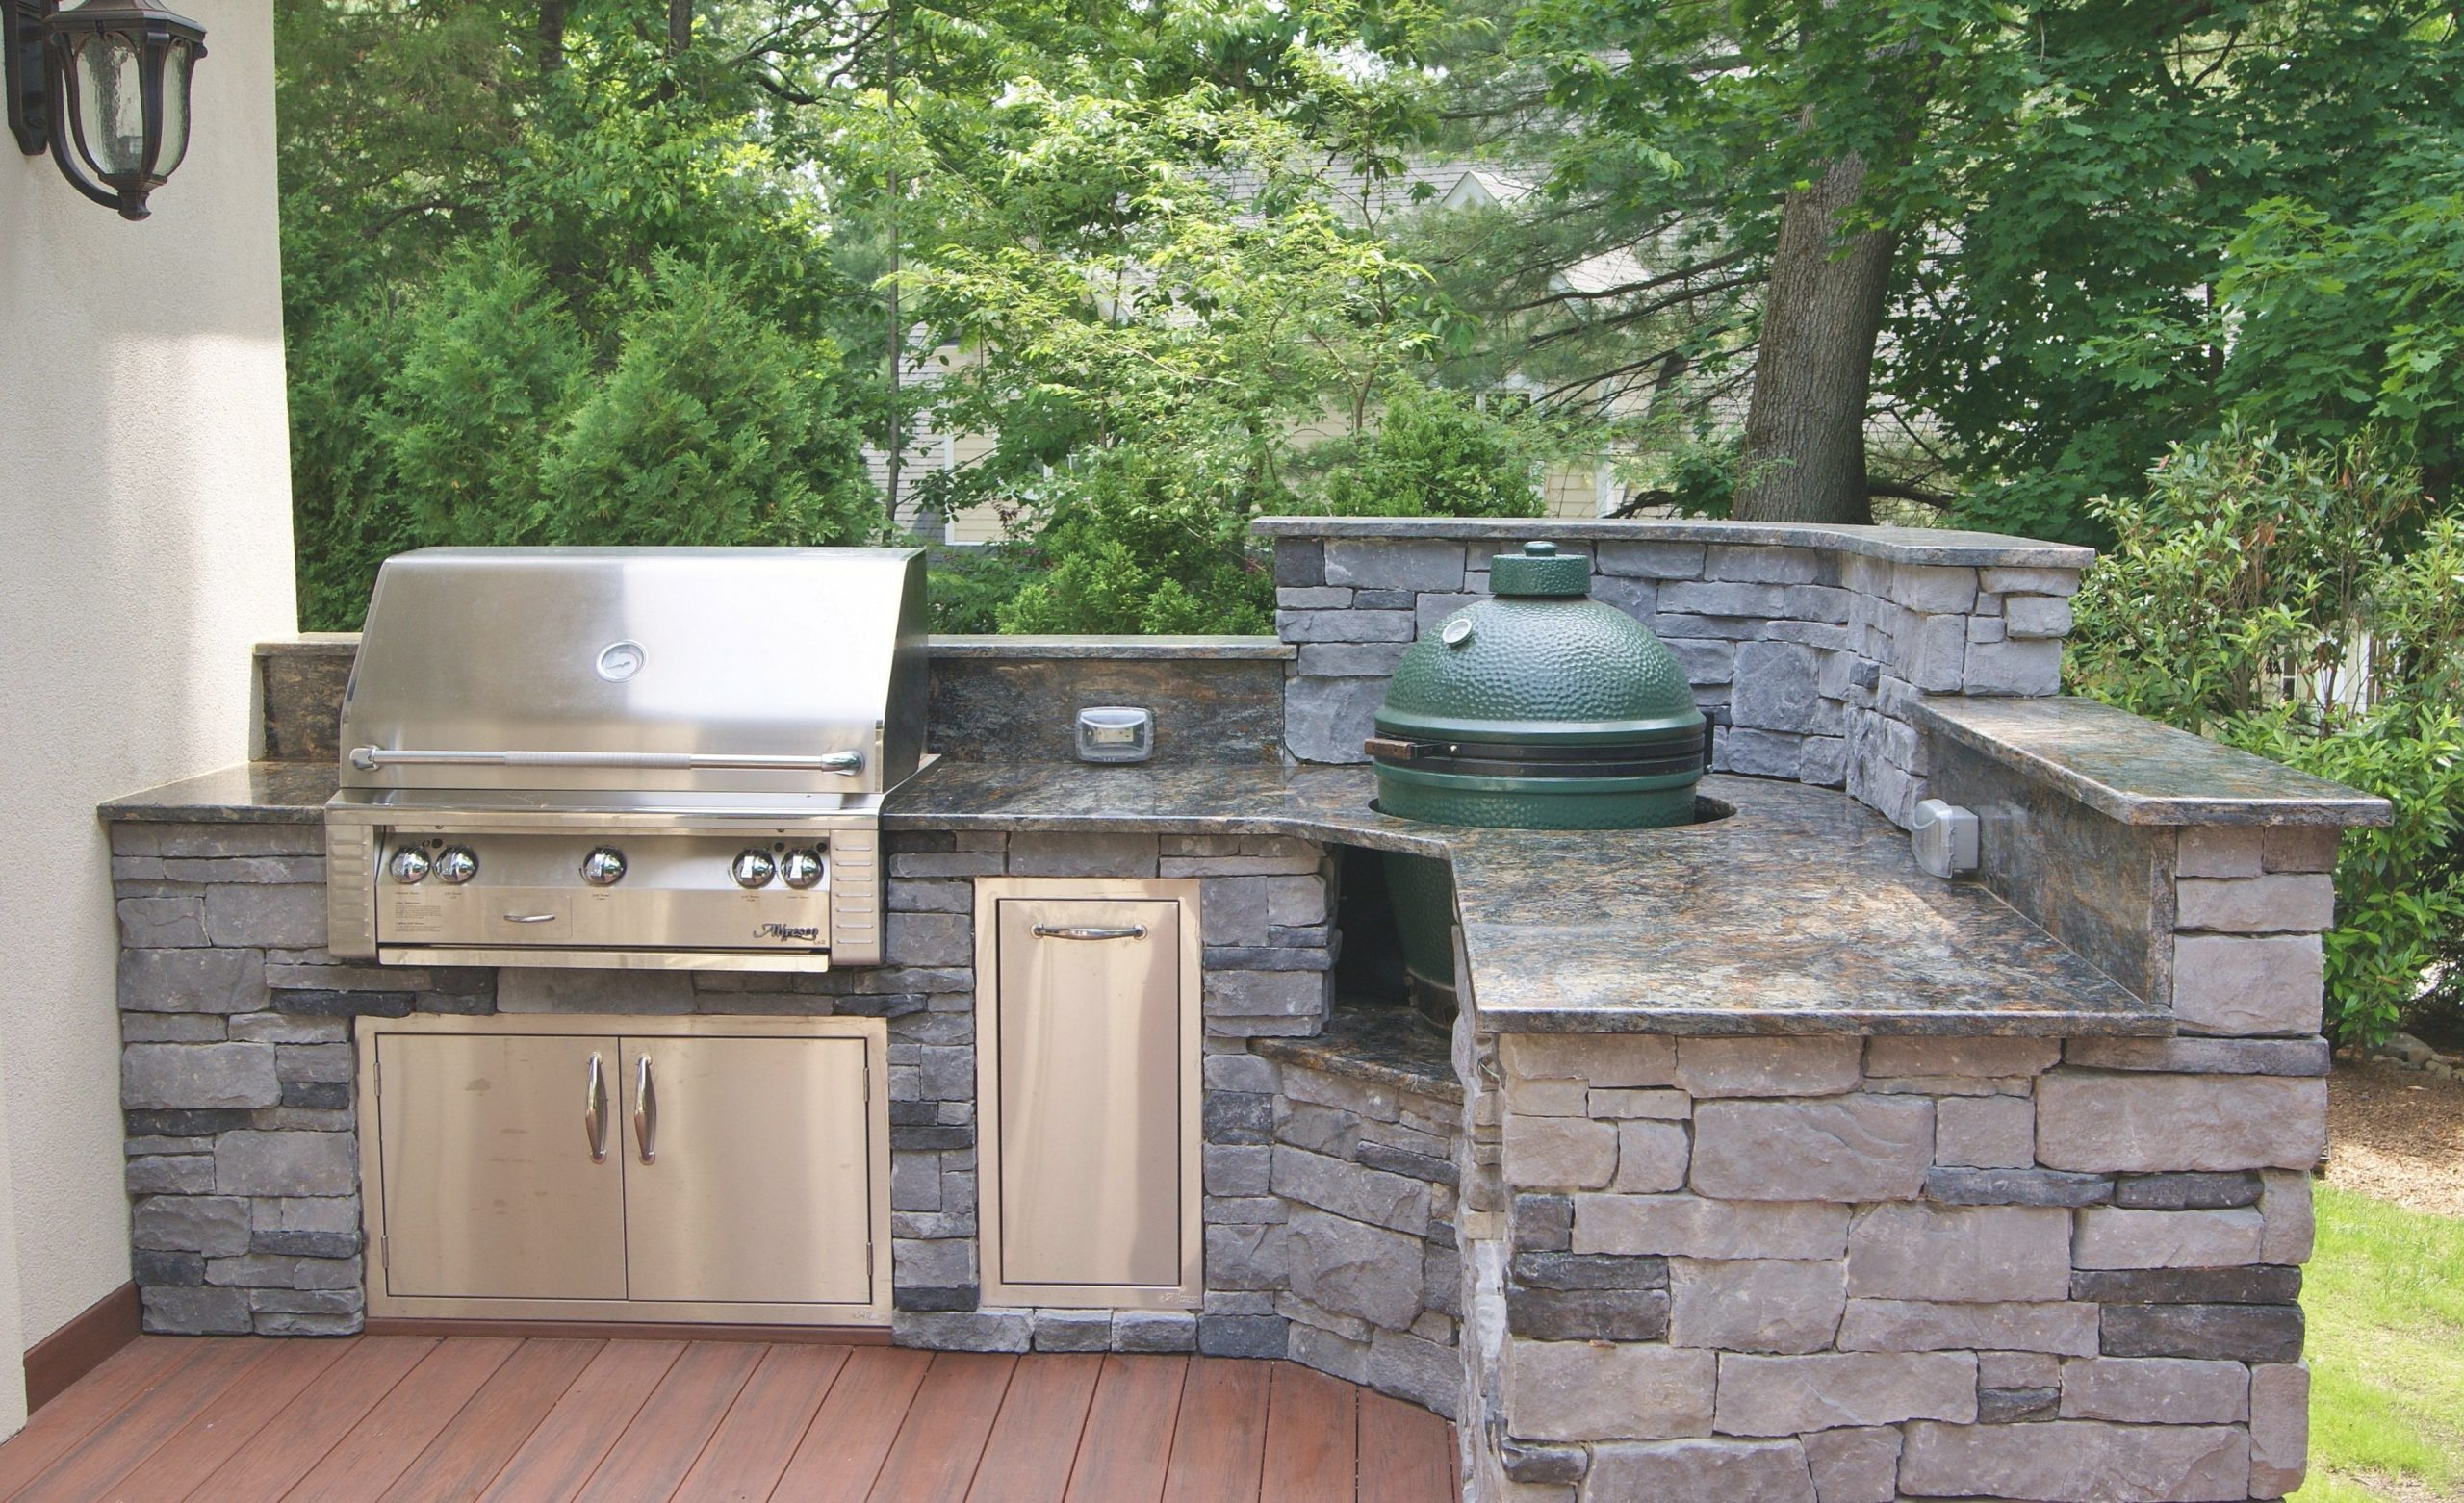 Dsc03585-Franklin-Lakes-Nj-Custom-Stone-Kitchen-With-Viking intended for Big Green Egg Outdoor Kitchen